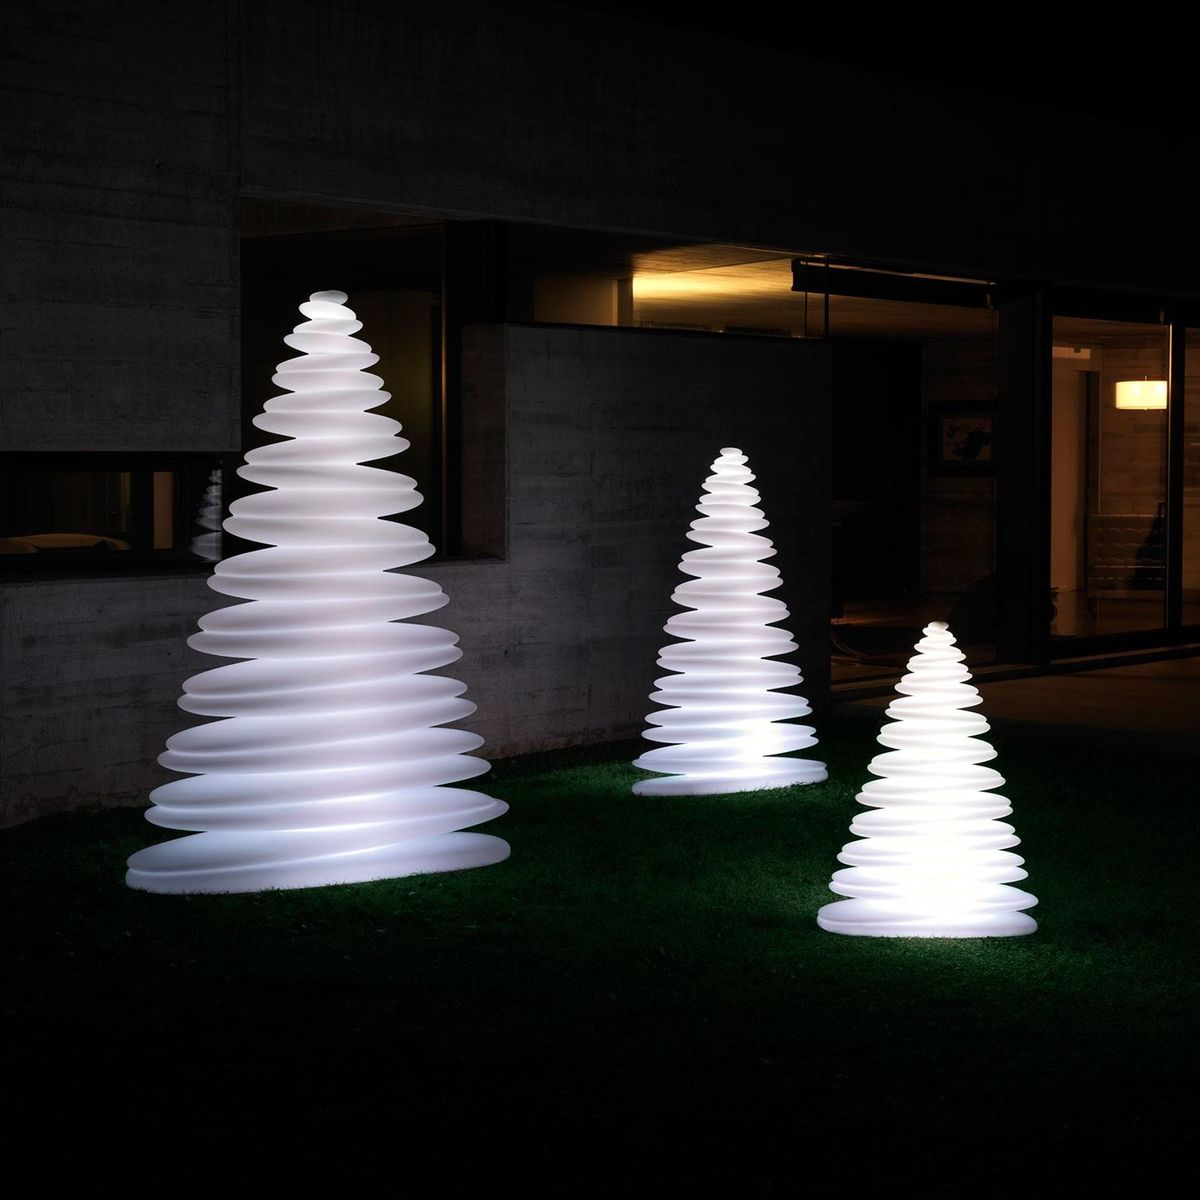 vondom chrismy led christmas tree - Led Christmas Tree